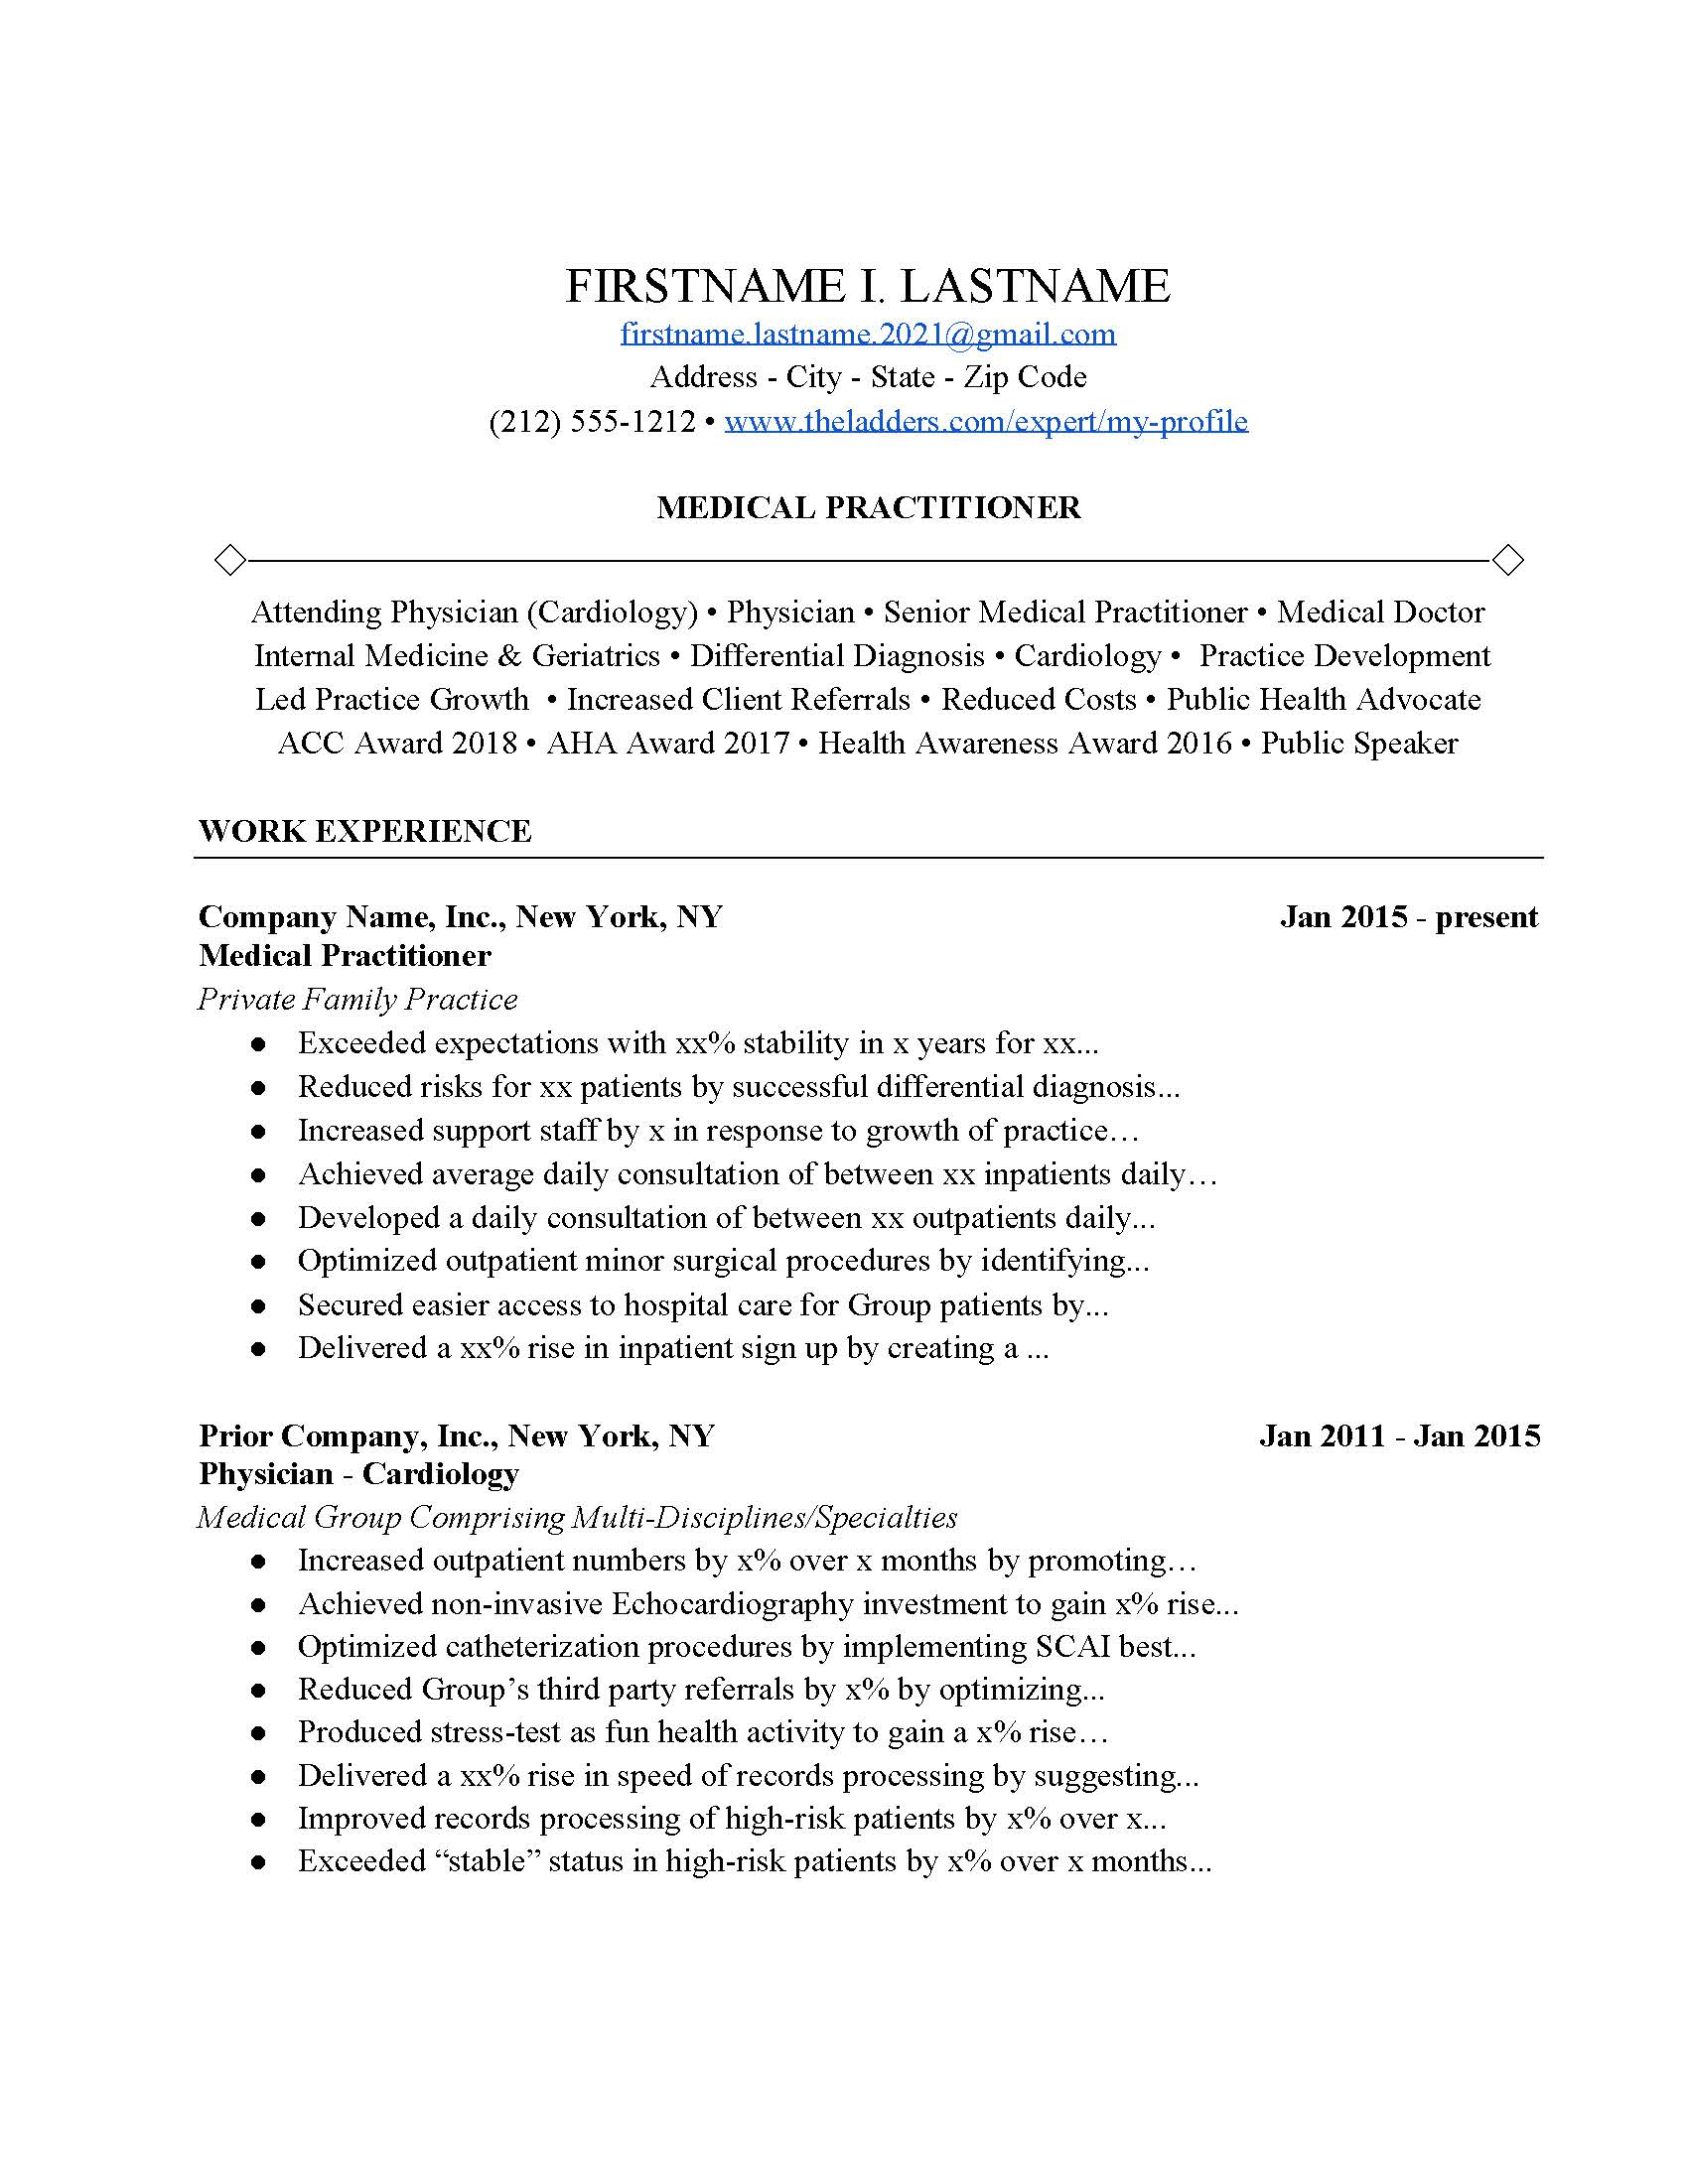 medical practitioner resume example  free download